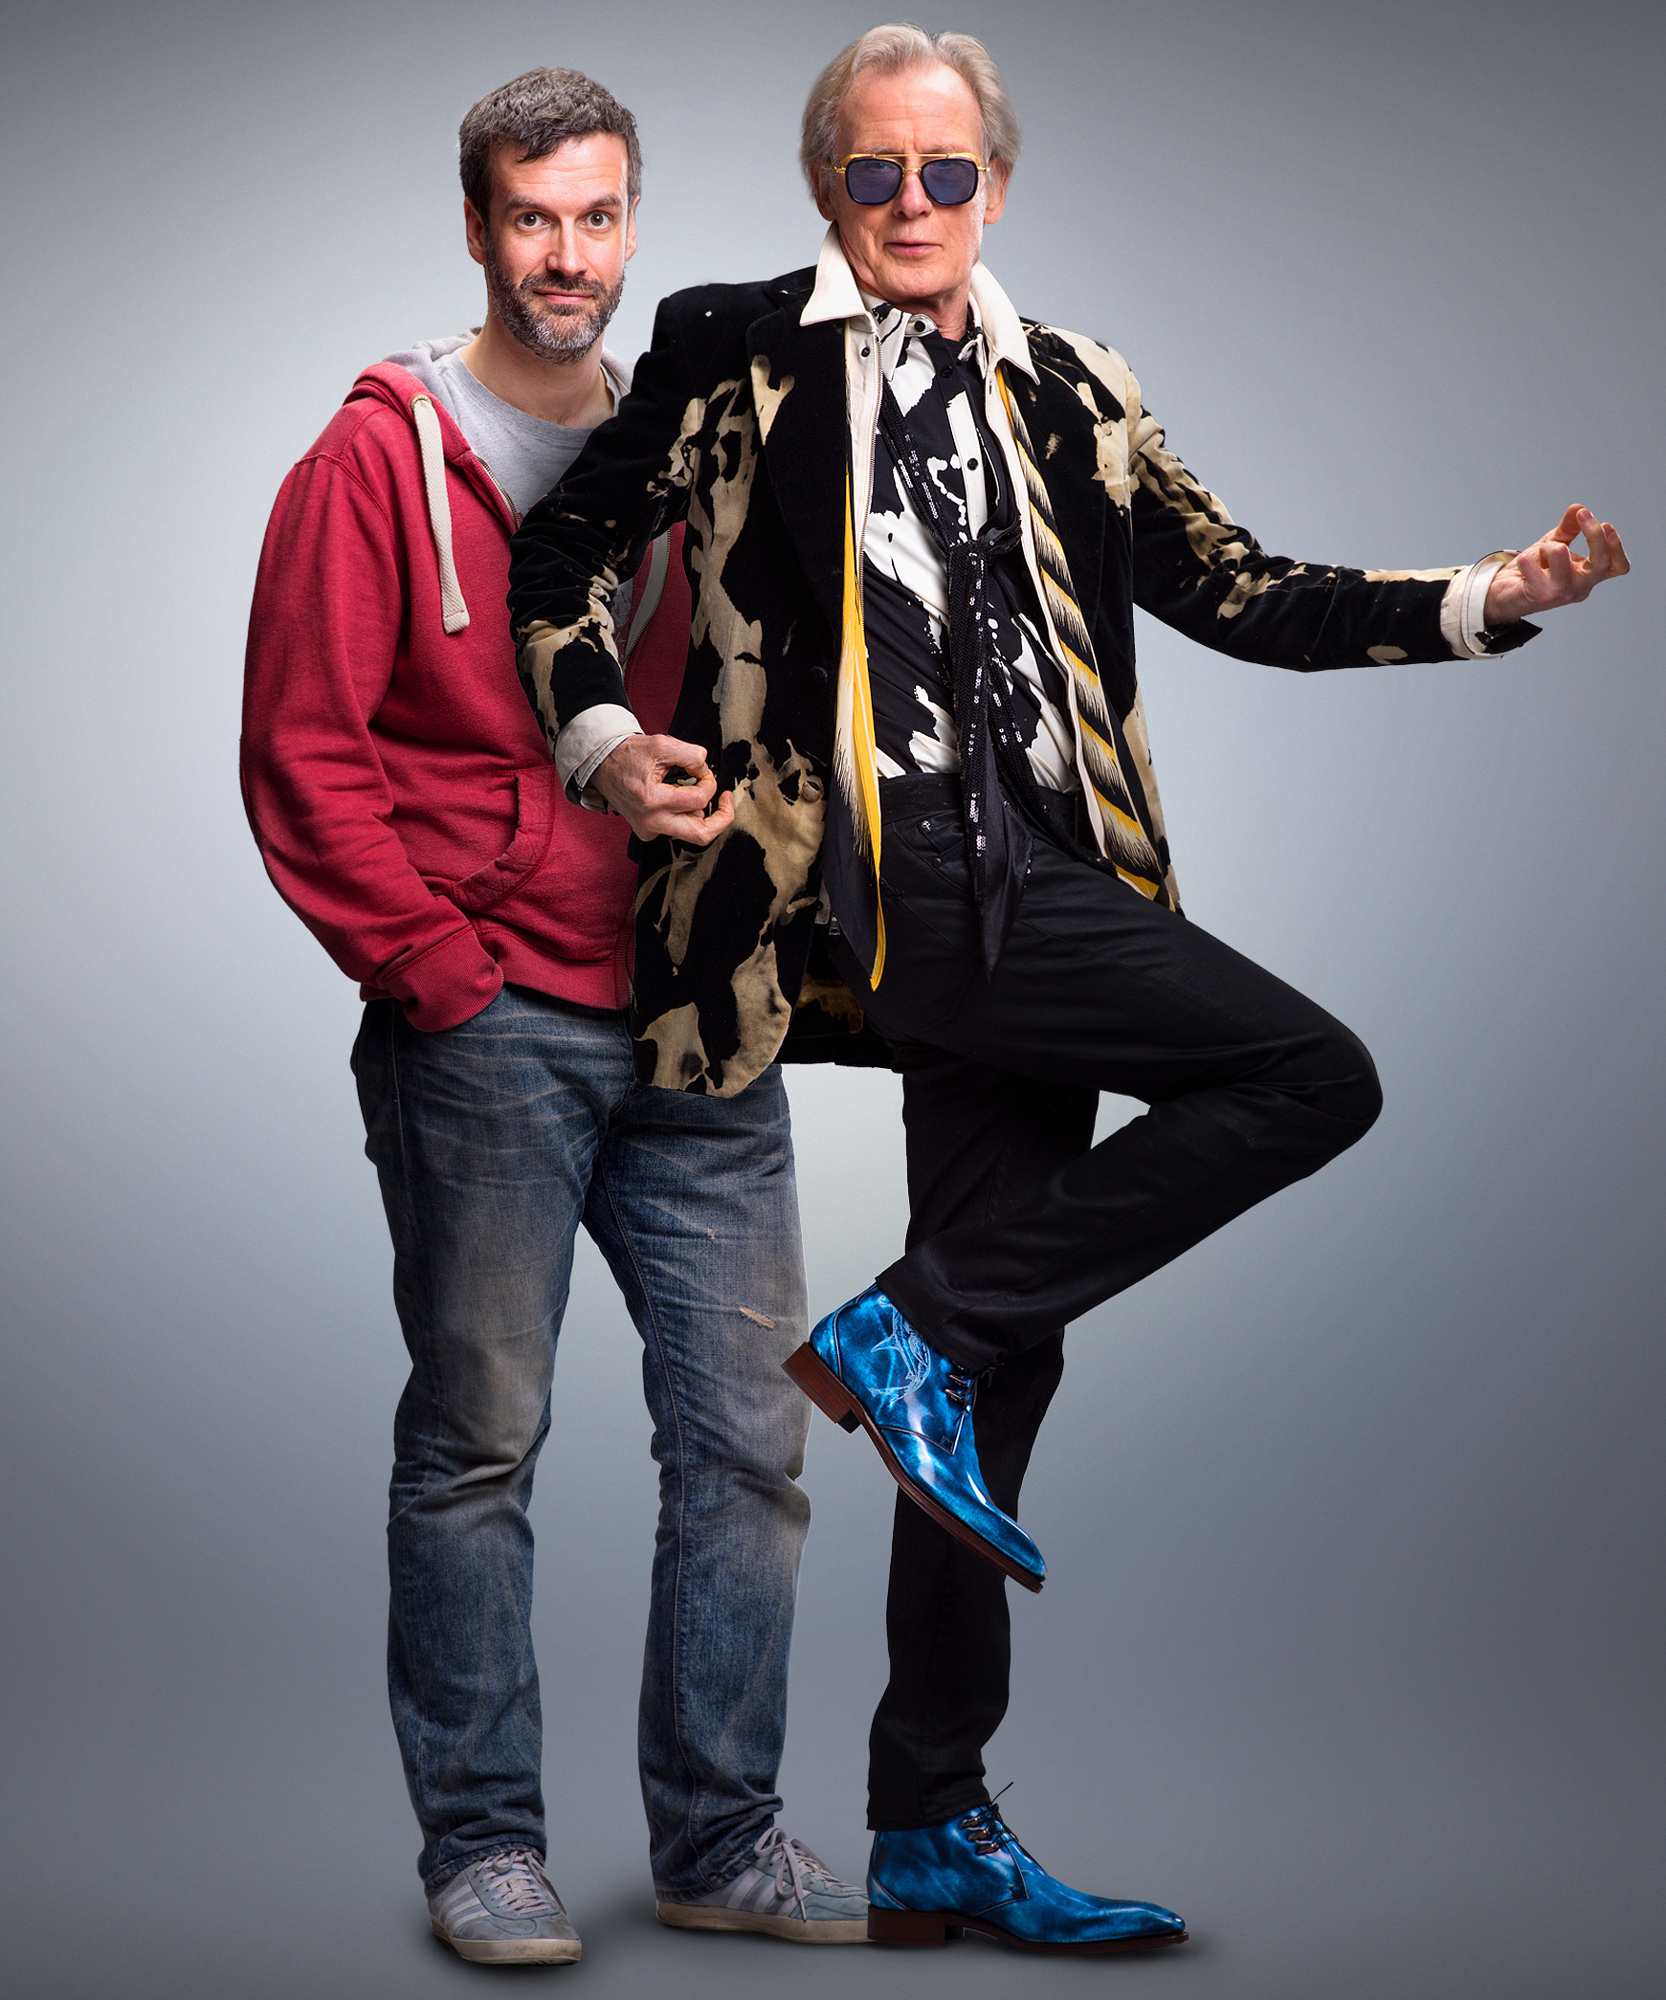 <p>Marcus Brigstocke and Bill Nighy</p>